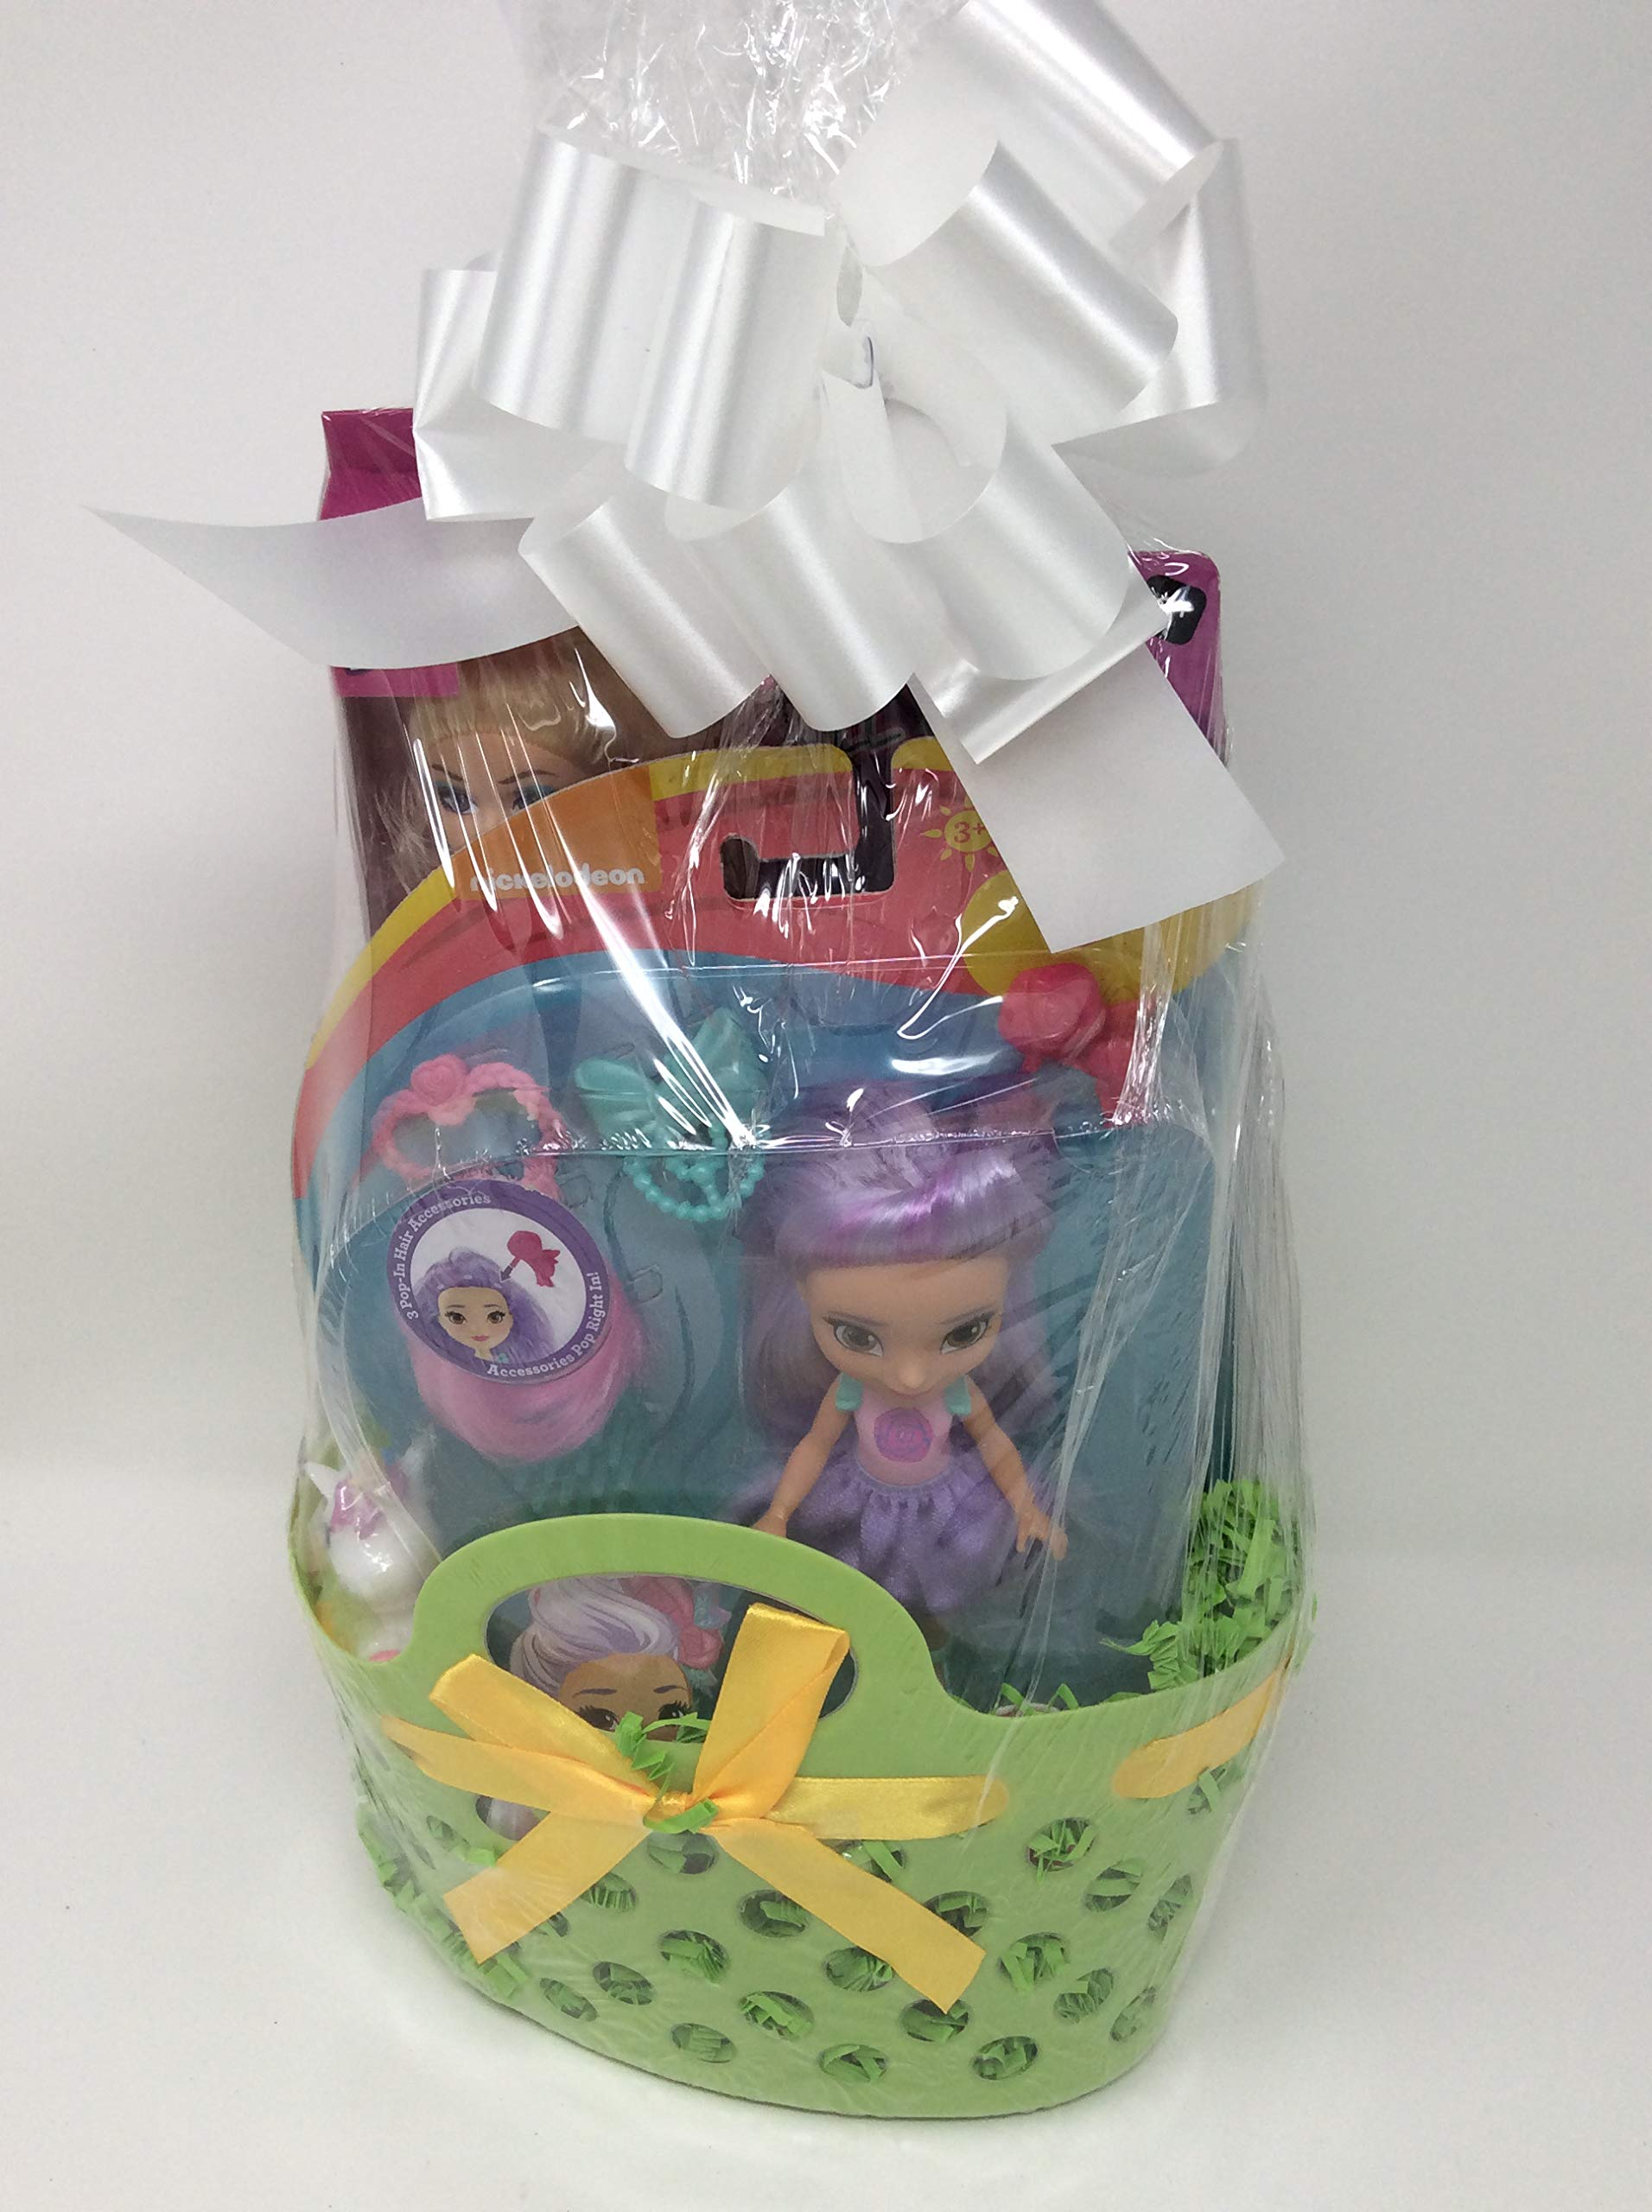 Happy Easter Birthday Basket Kids Toddlers Gift Children Party Fun Assorted Pre Made Baskets -SD Mini Doll 2 GSB by Easter and Birthday Basket